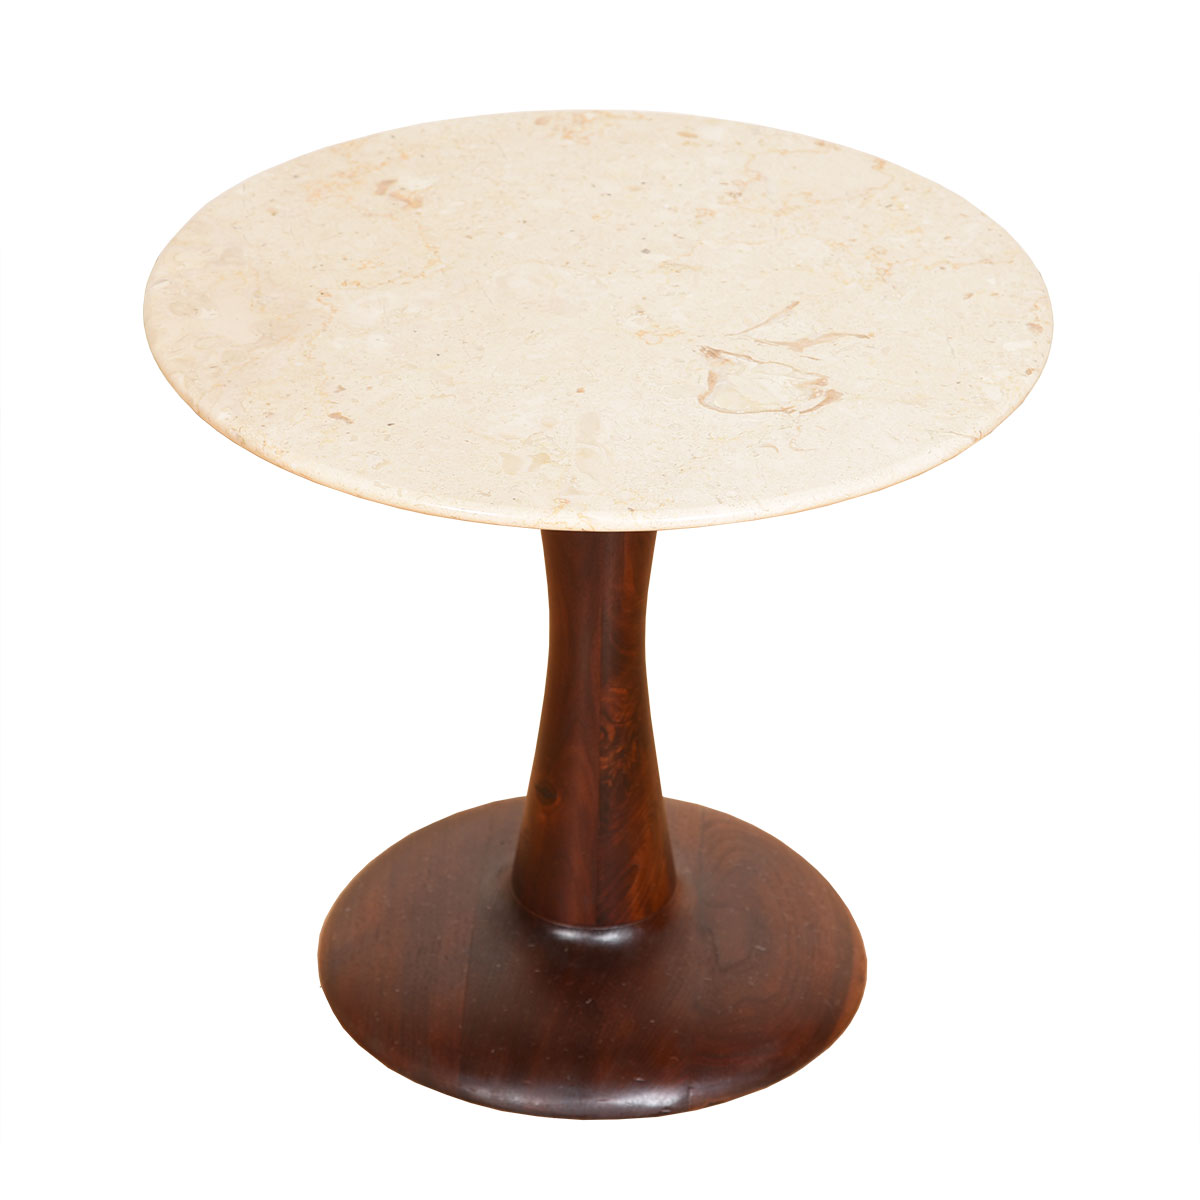 Swedish Round Travertine / Marble Tulip Accent Table w/ Walnut Base